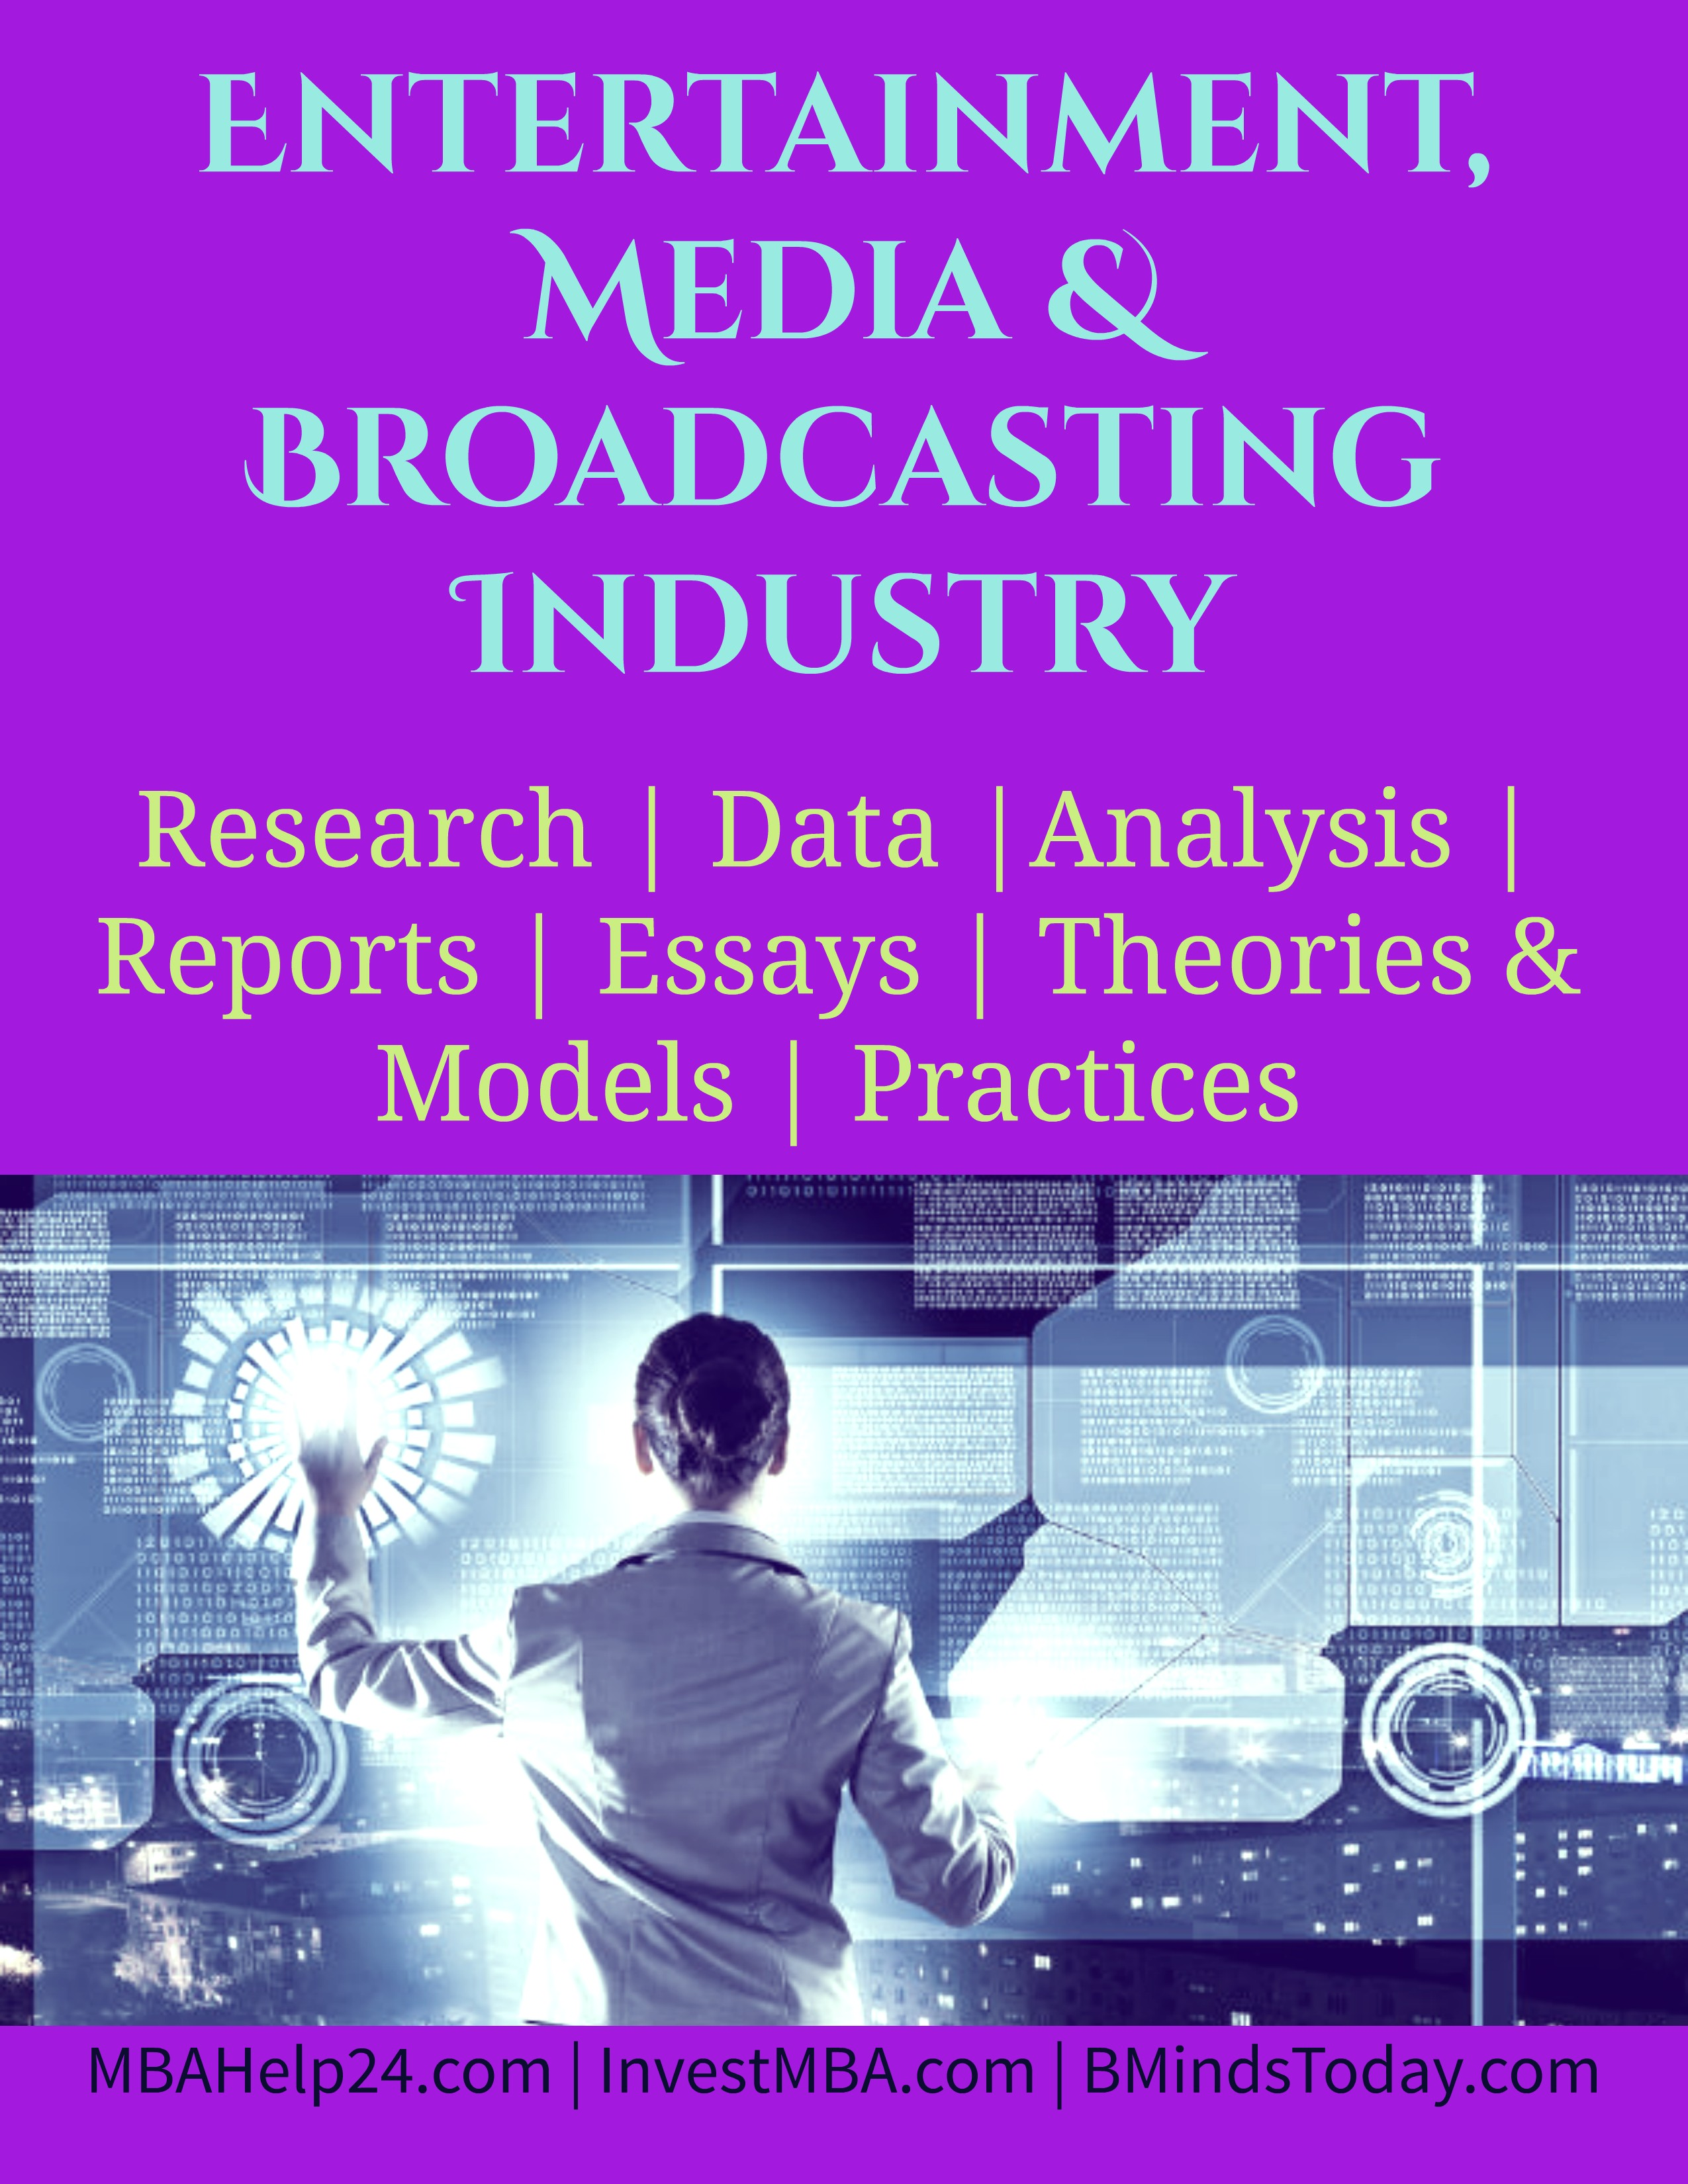 Entertainment, Media and Broadcasting Industry- MBA Media Management